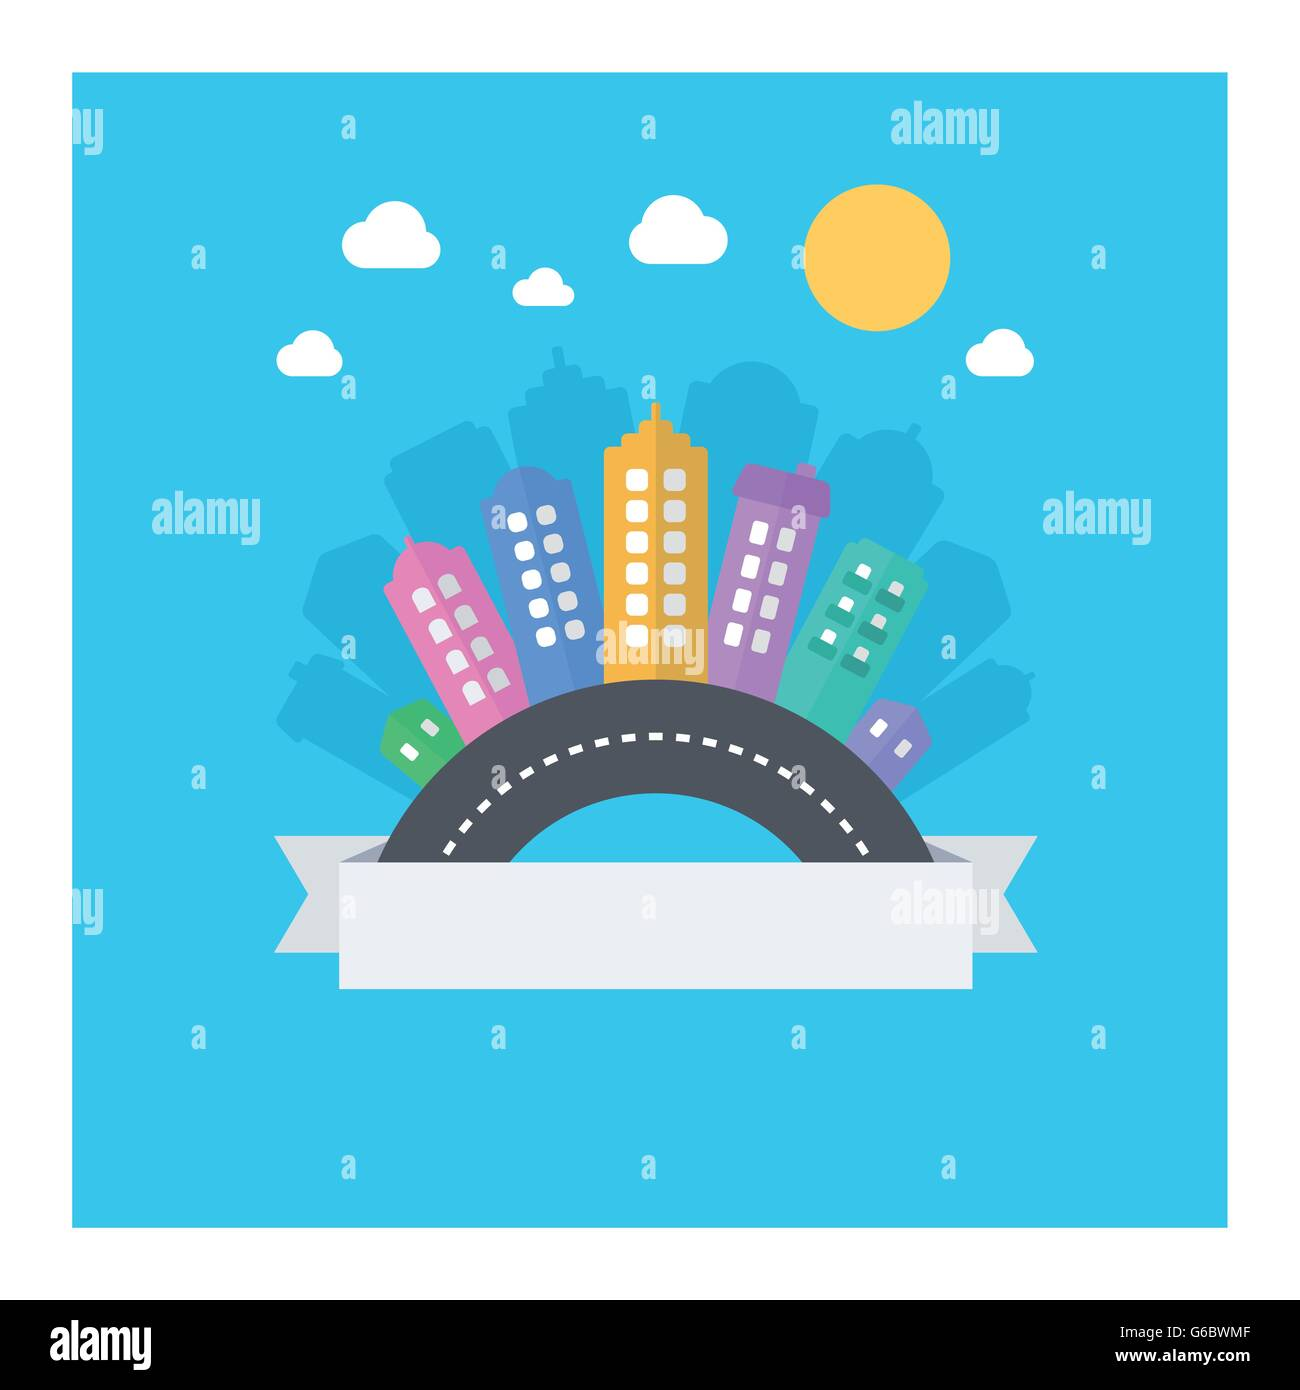 Vector design of modern cityscape with text area. Illustration with modern flat icons: road, buildings, sky. - Stock Image